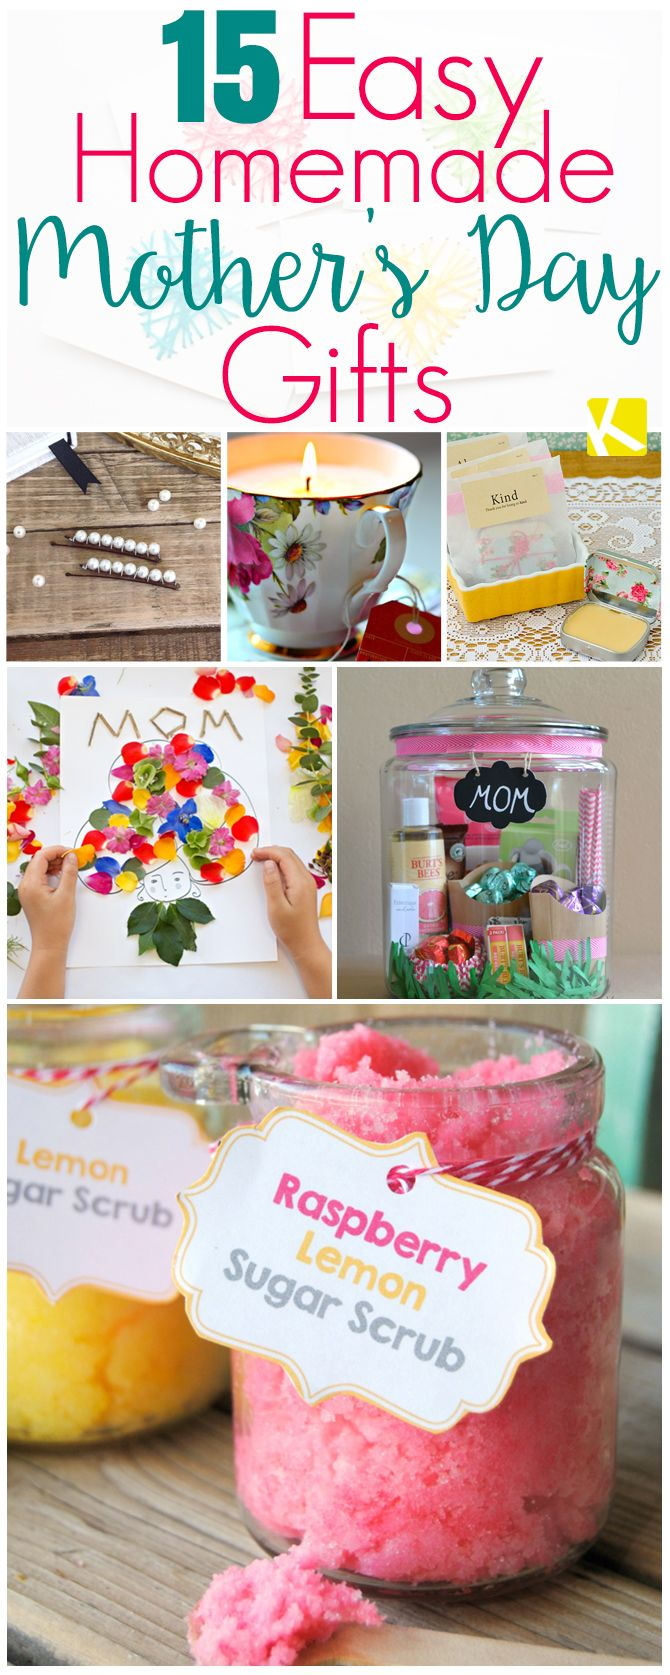 15 mother s day gifts that are ridiculously easy to make Mothers day presents diy